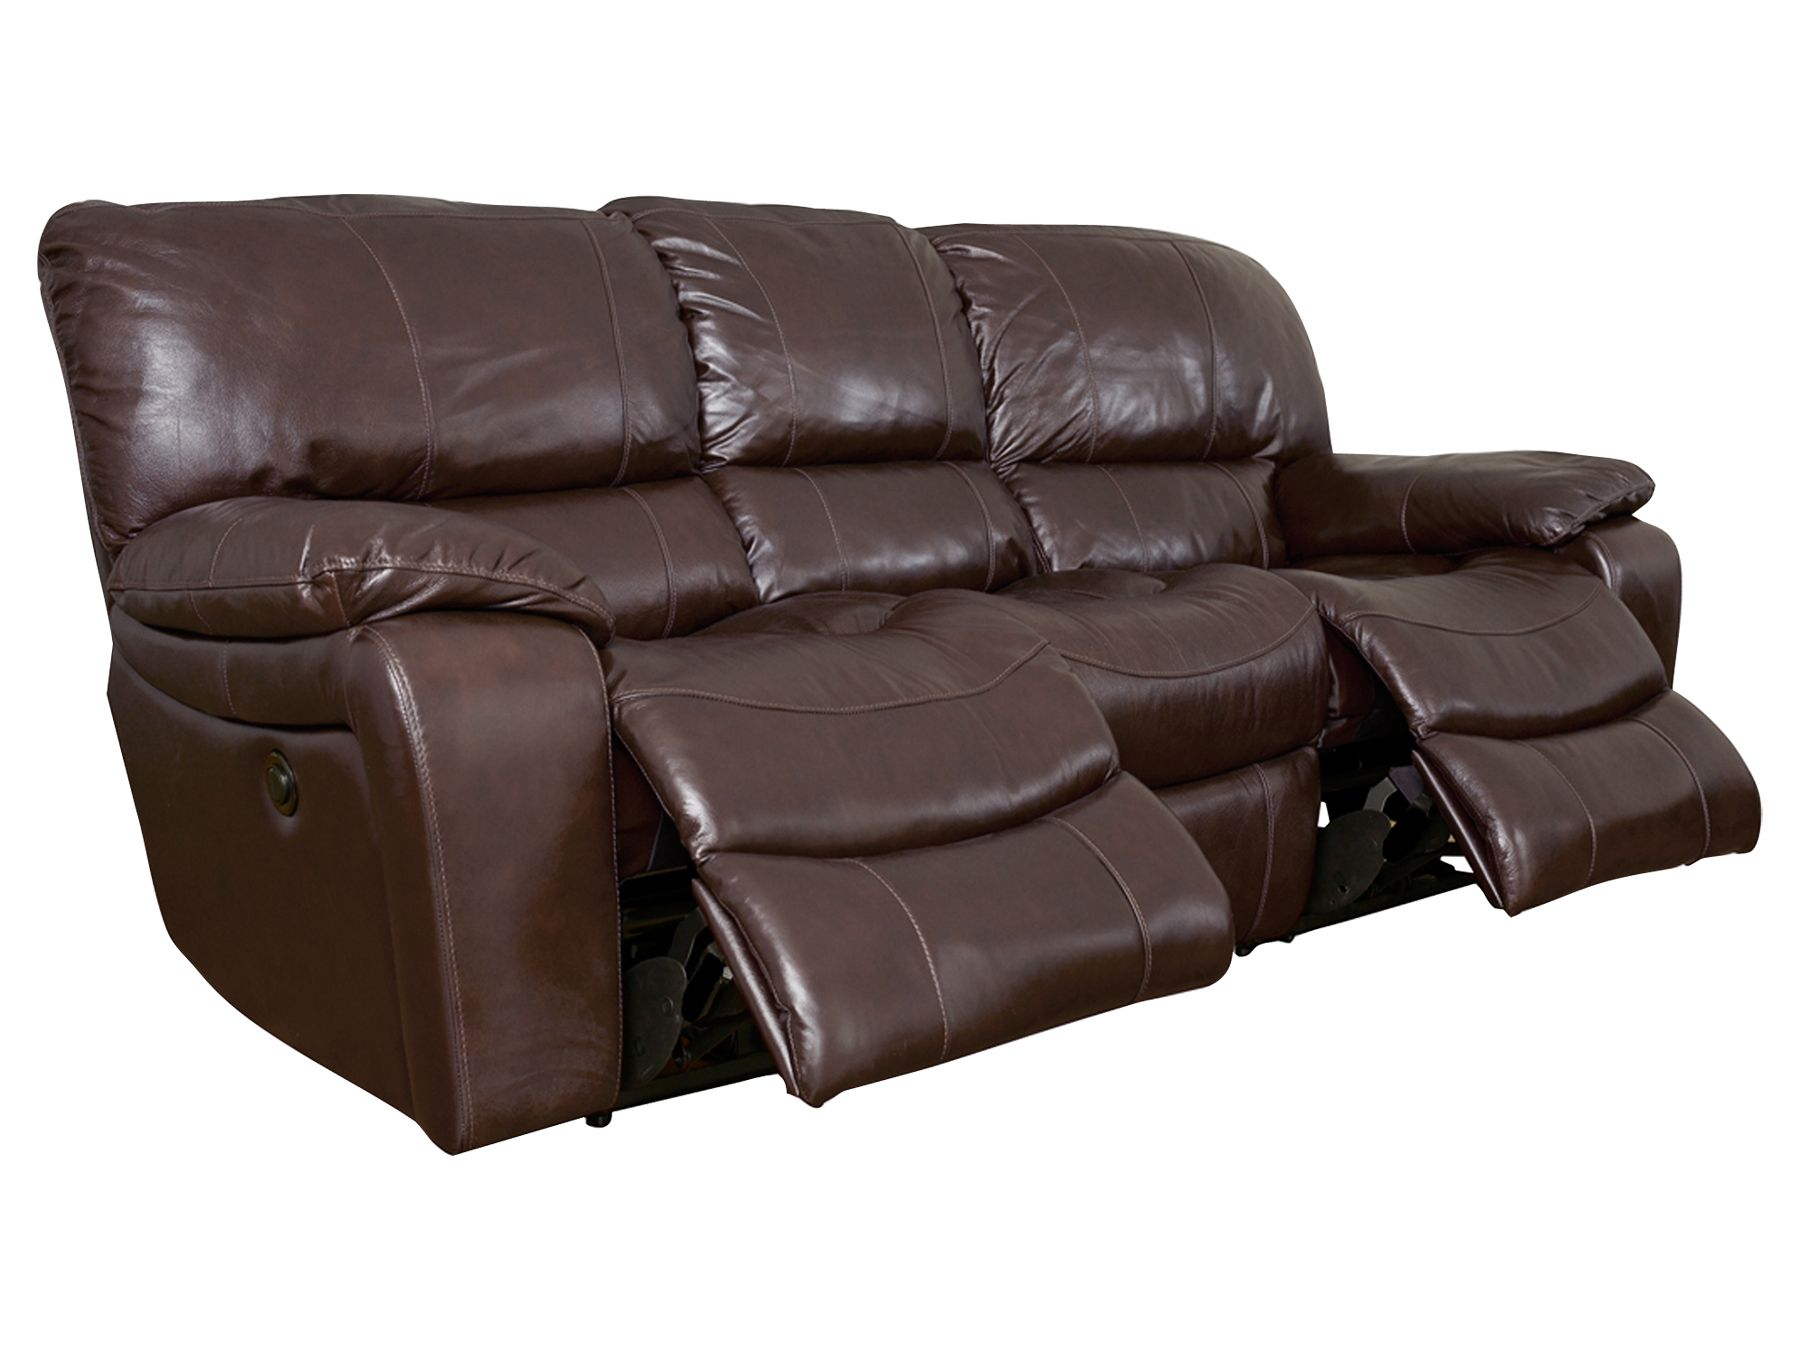 reclining sofa leather brown rattan garden furniture dining set 3 seater recliner styles